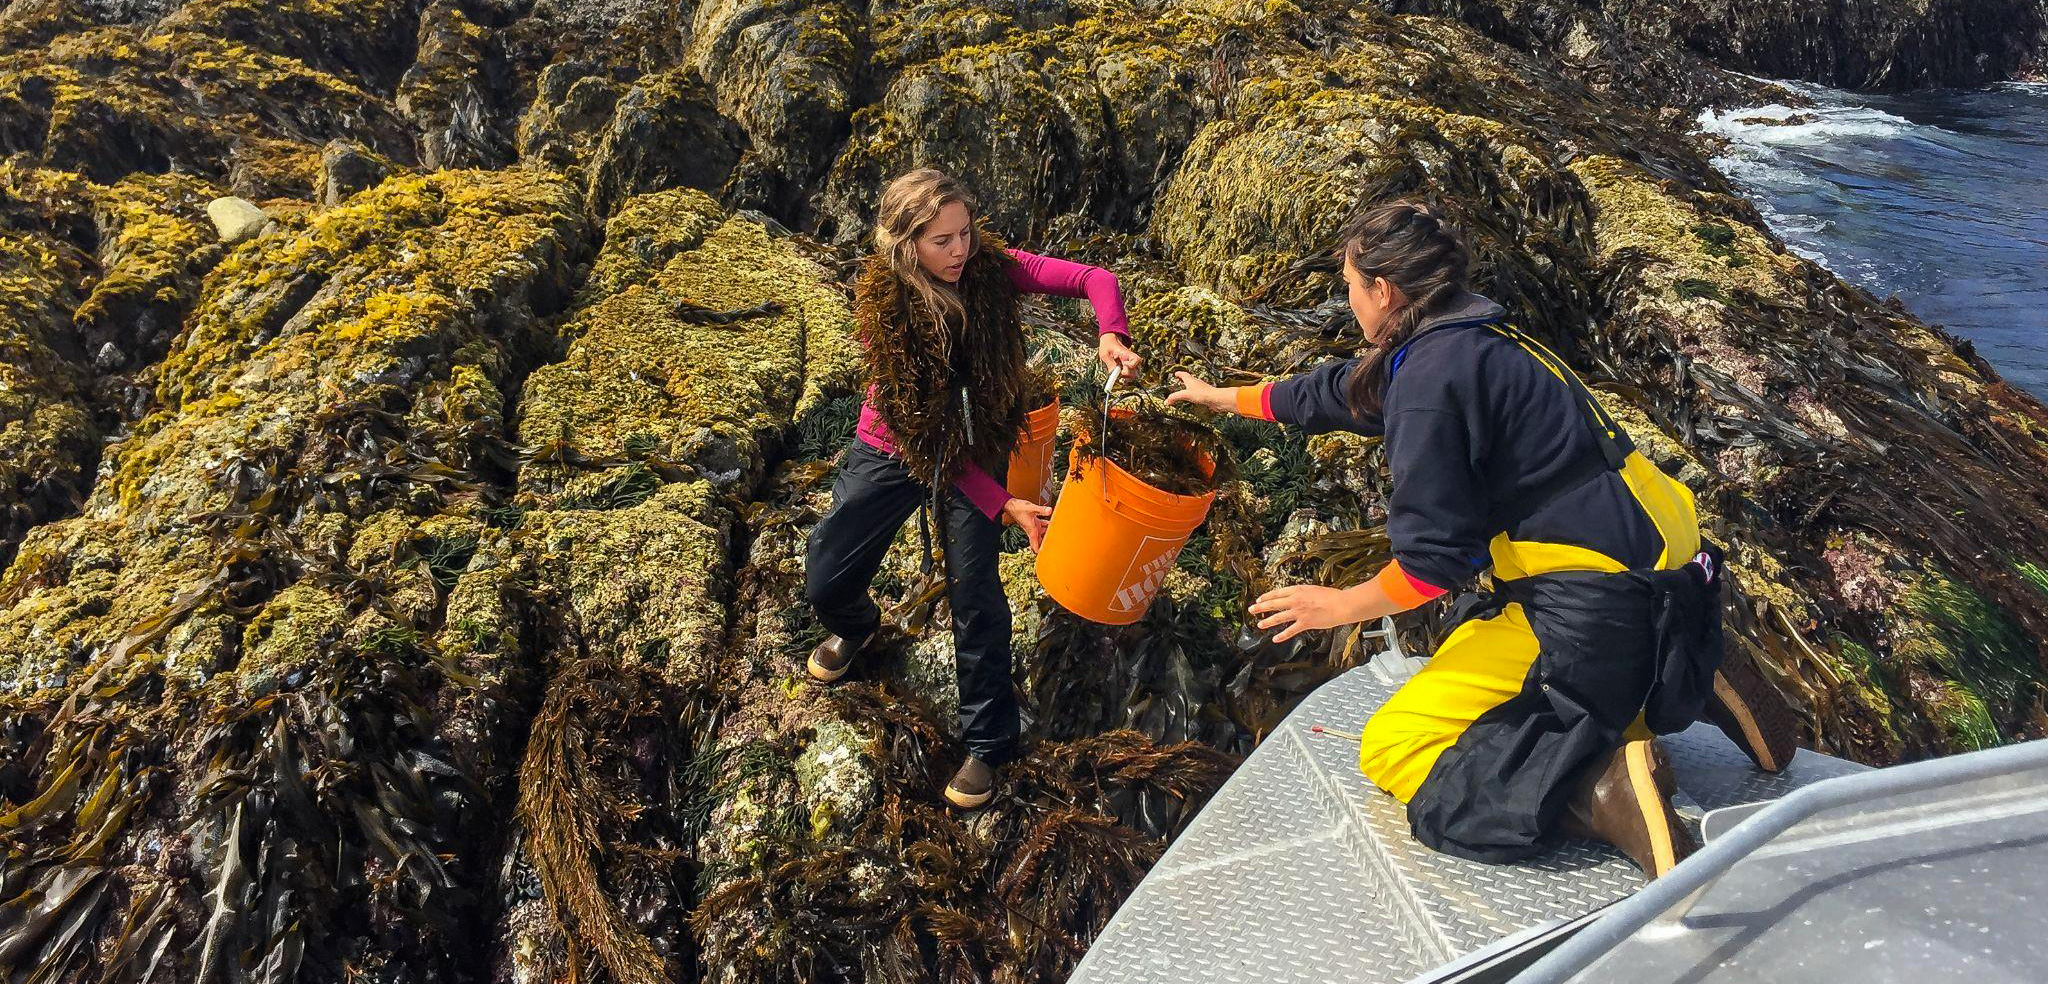 Two women passing a bucket of seaweed to eachother.